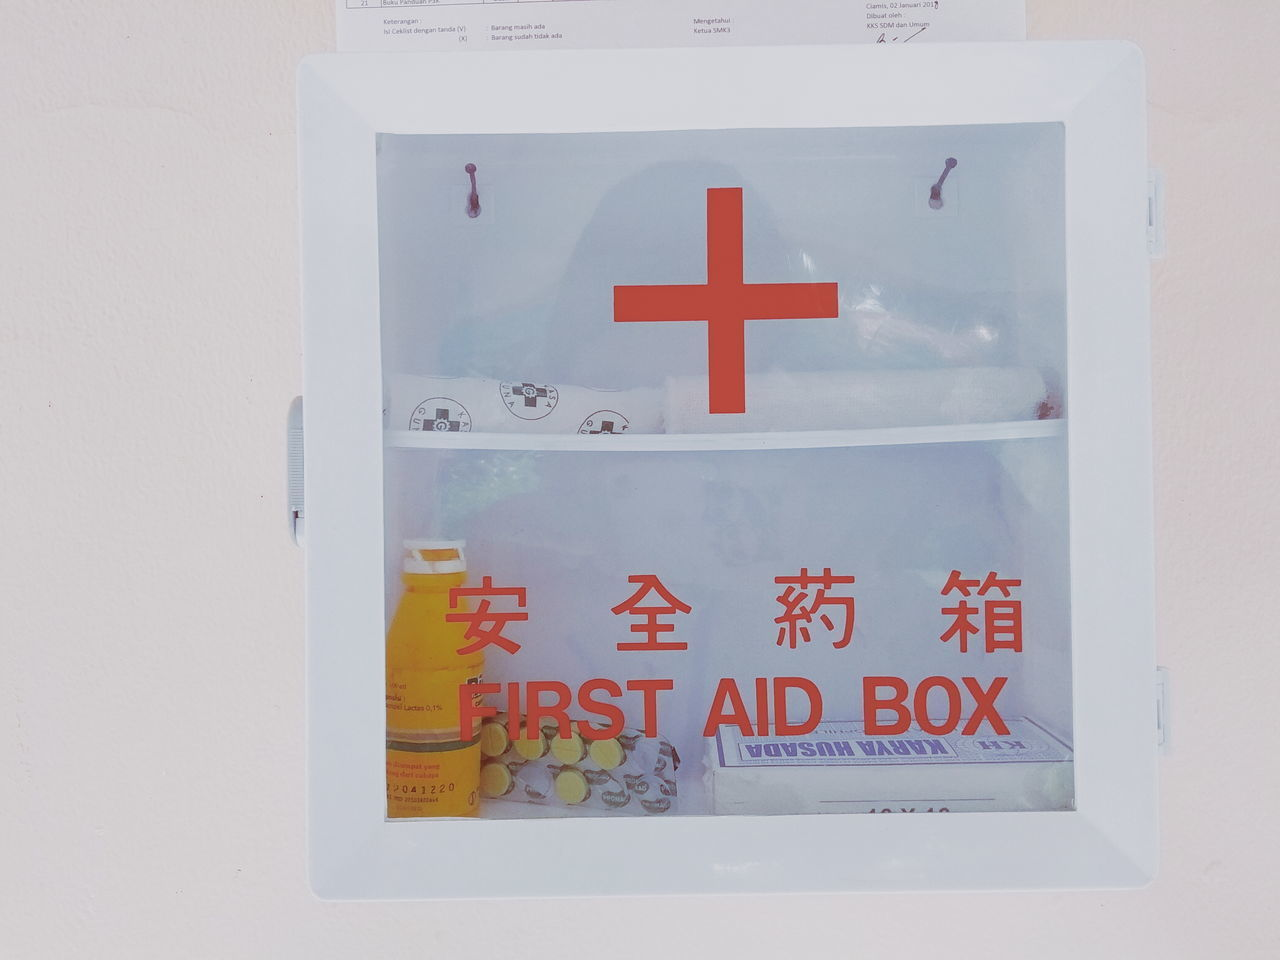 CLOSE-UP OF TEXT ON WHITE BOX